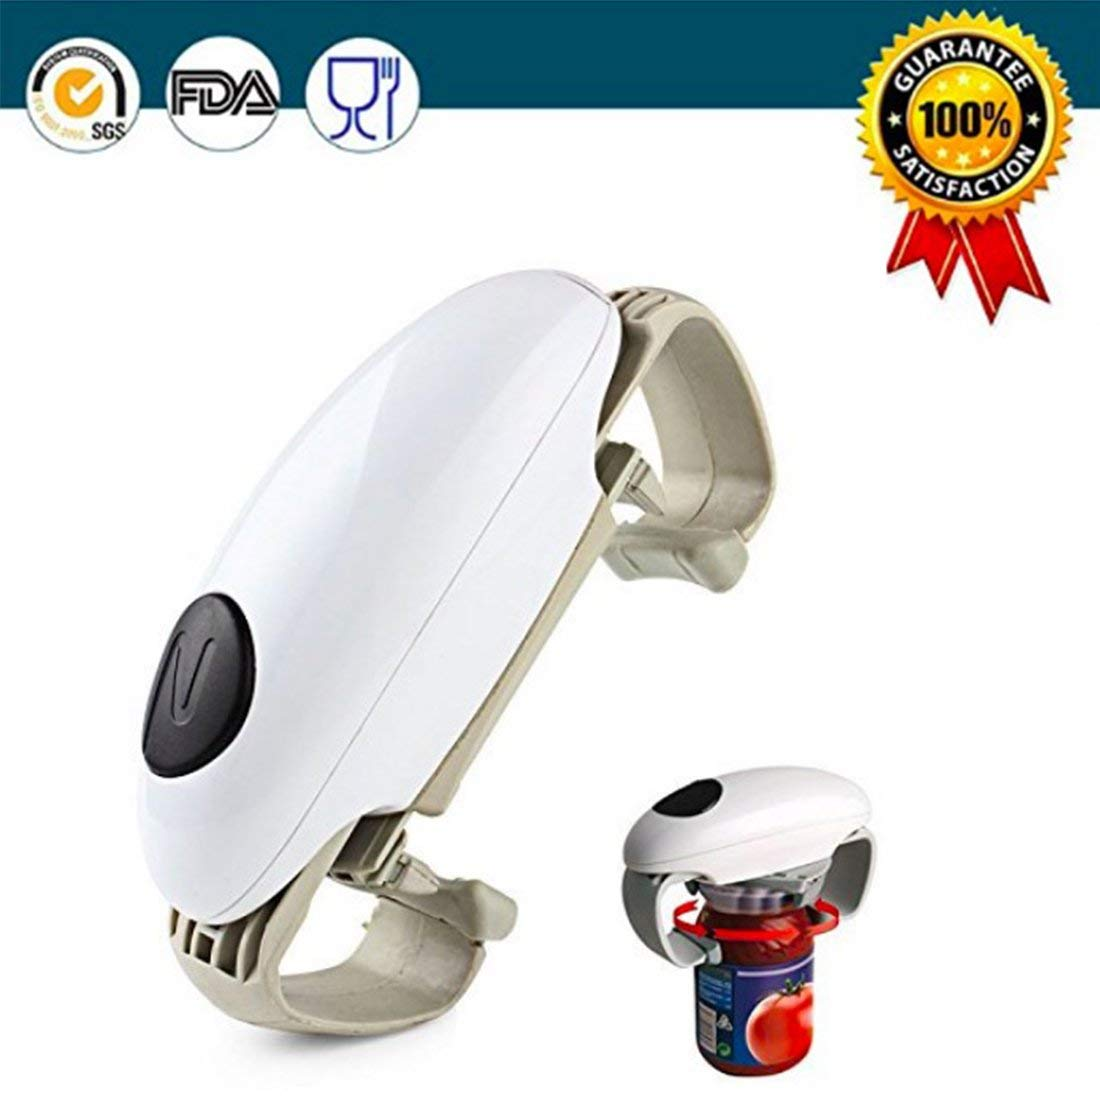 Electric Can Opener 2AA Batteries Tin Operated Smooth Soft Edge Hands Free One Touch Start Automatic Jar Opener for Arthritis Individuals, Seniors, Restaurant Chefs Safest, fastest, Easiest Bottle Jar